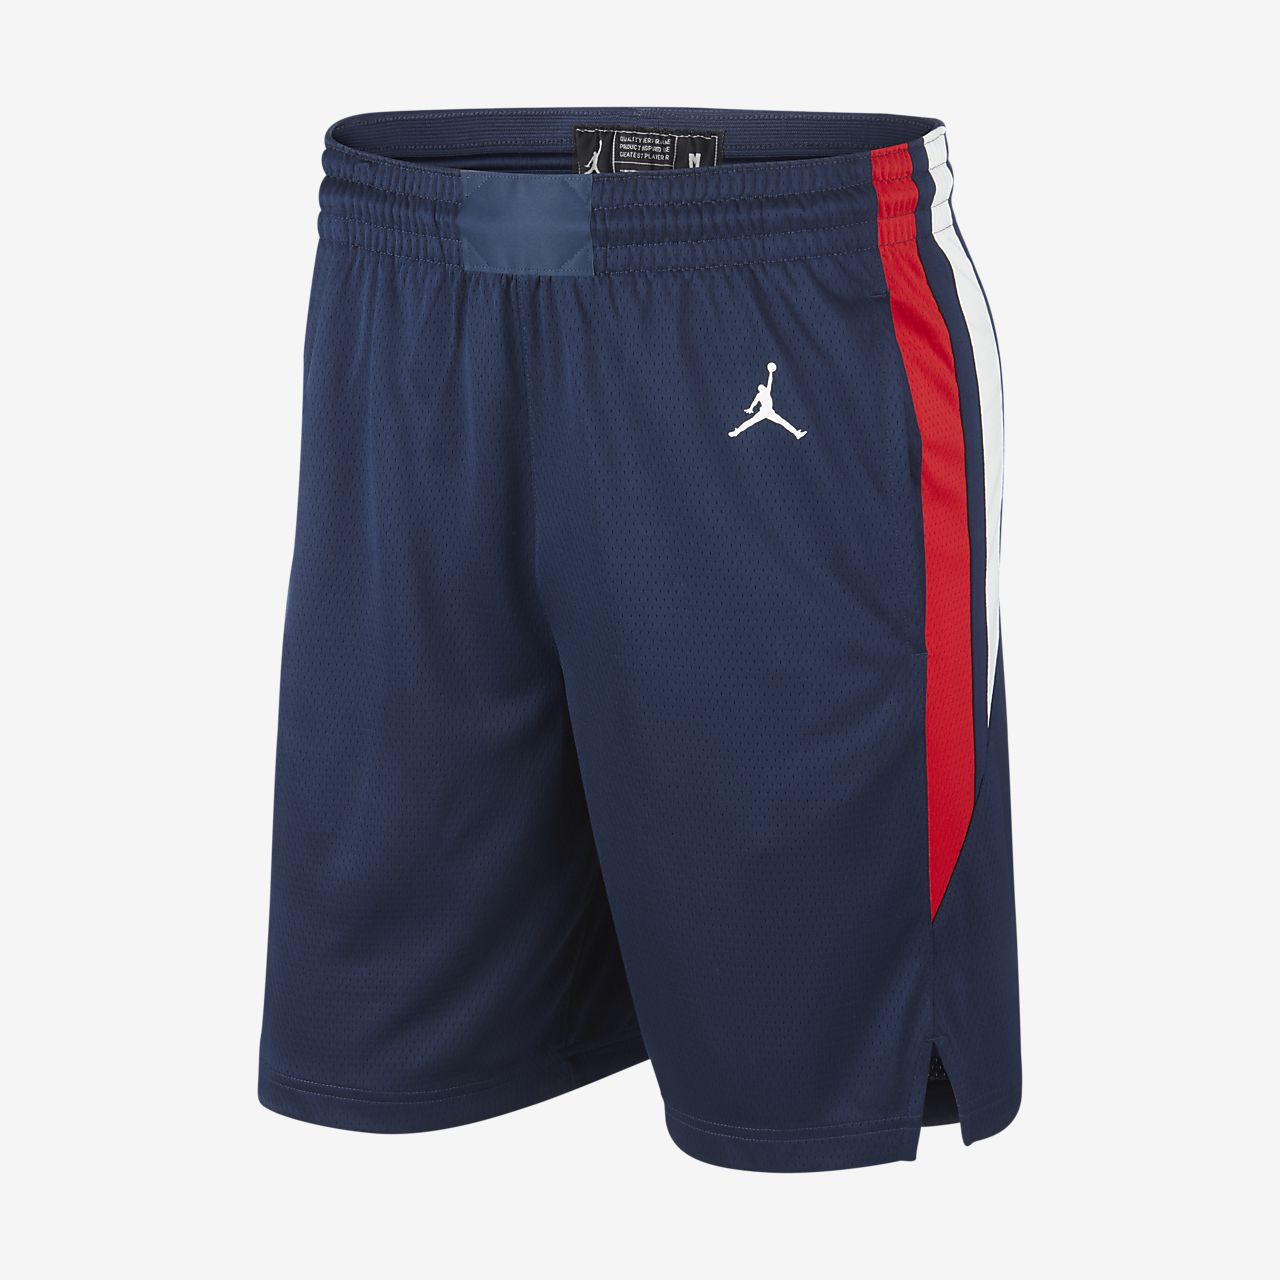 France Jordan Men's Basketball Shorts